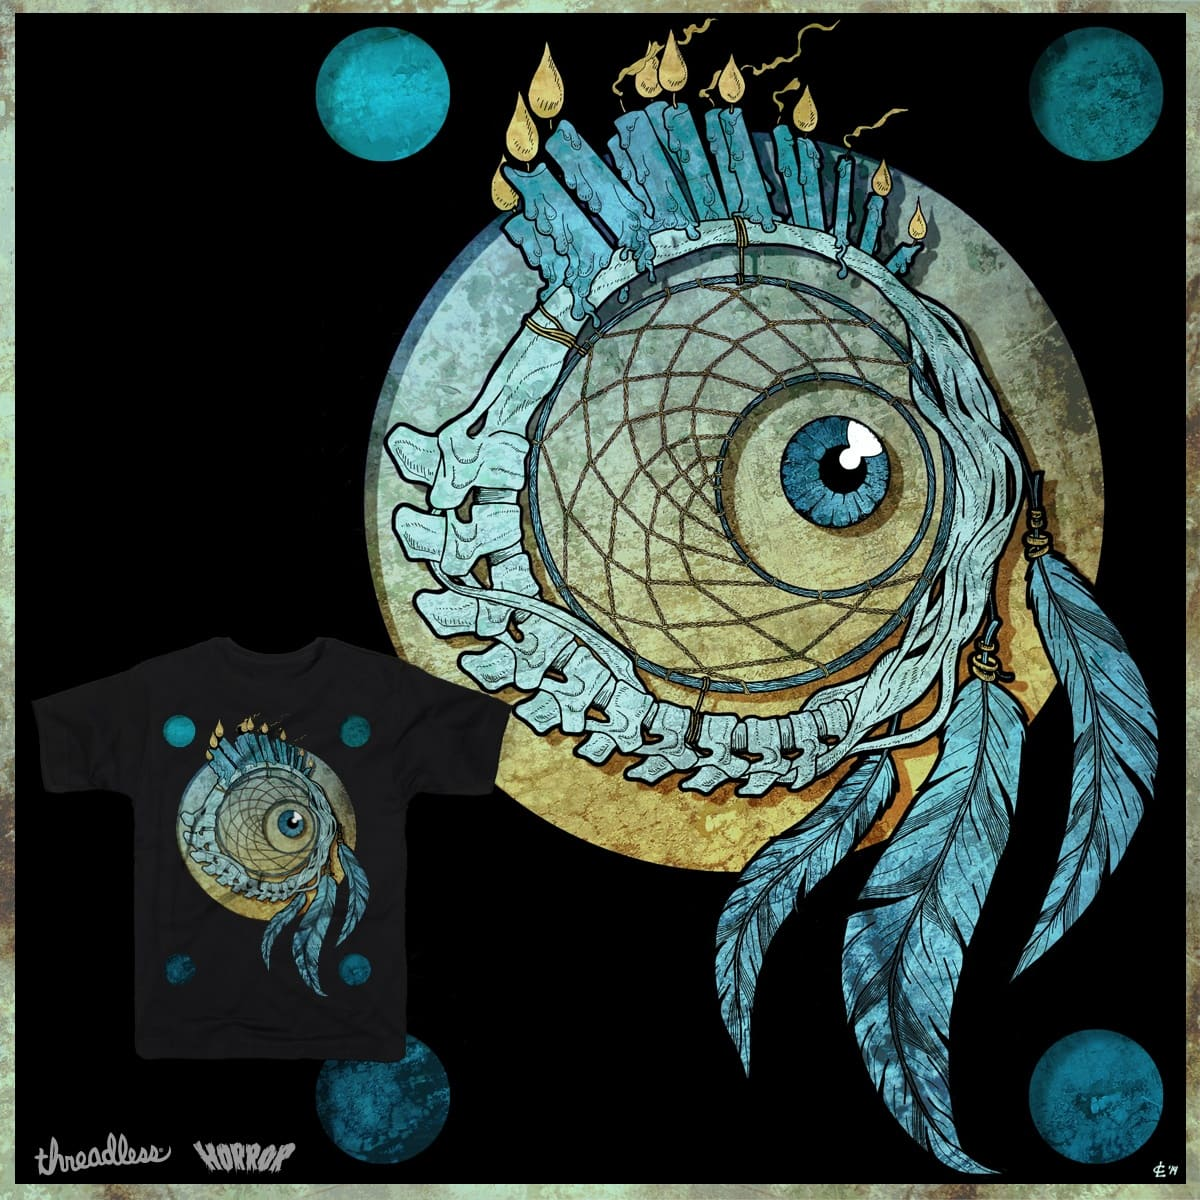 Dreamsnatcher by chuwho on Threadless